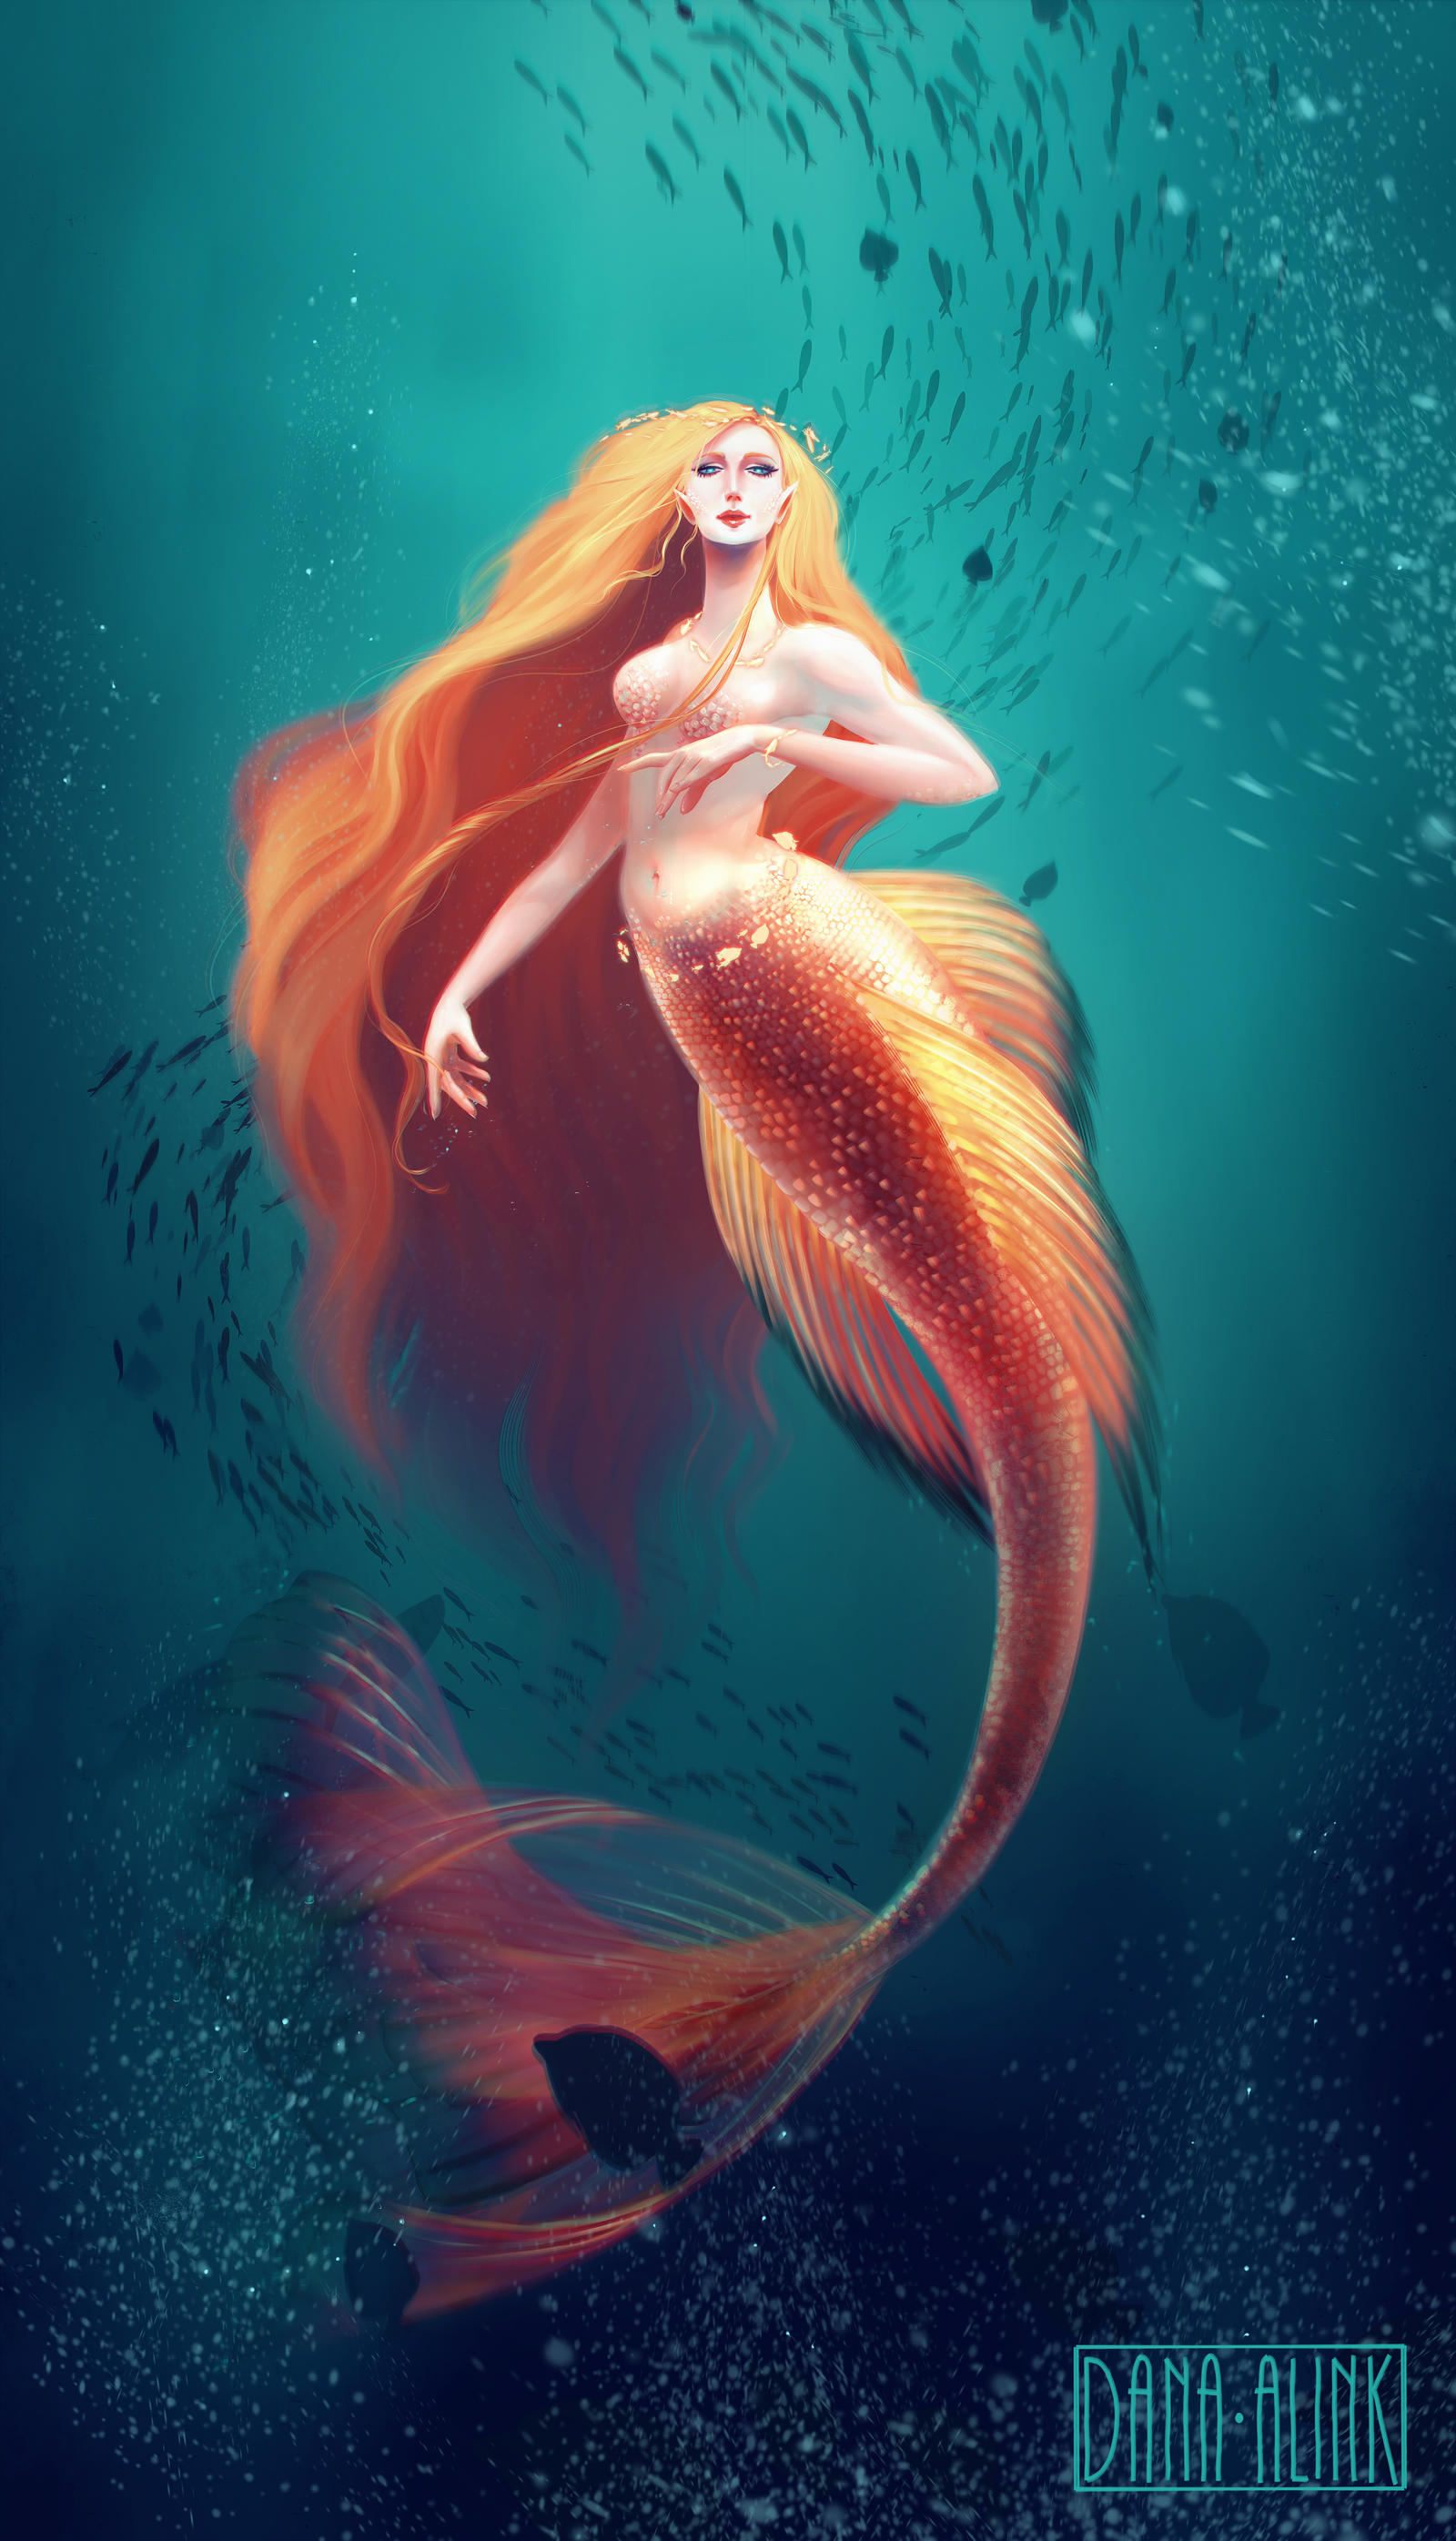 Queen of the sea by Kaizoku-hime on DeviantArt